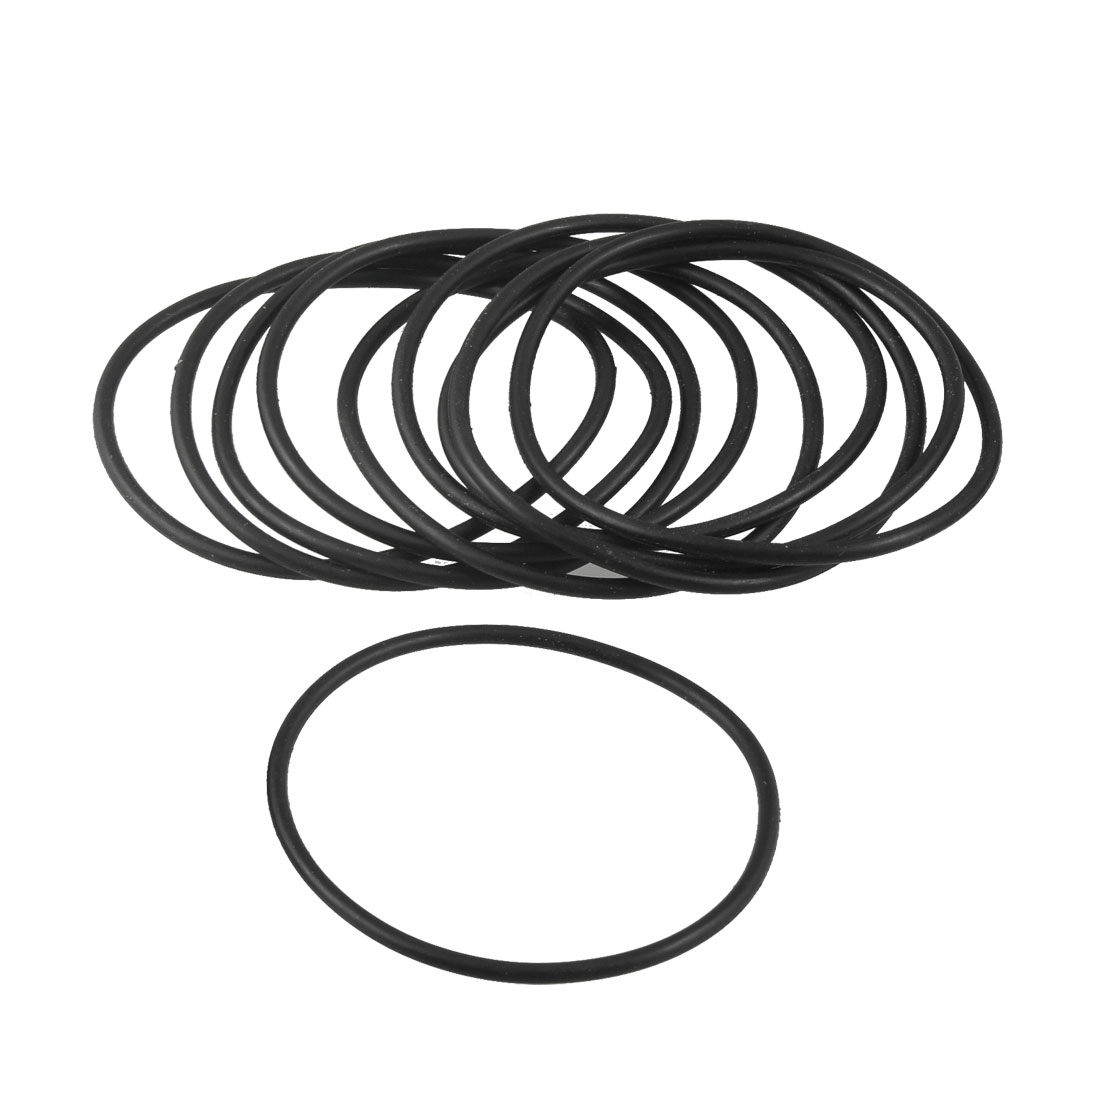 75mm x 3.1mm x 68.8mm Rubber Sealing Oil Filter O Rings Gaskets 10 Pcs